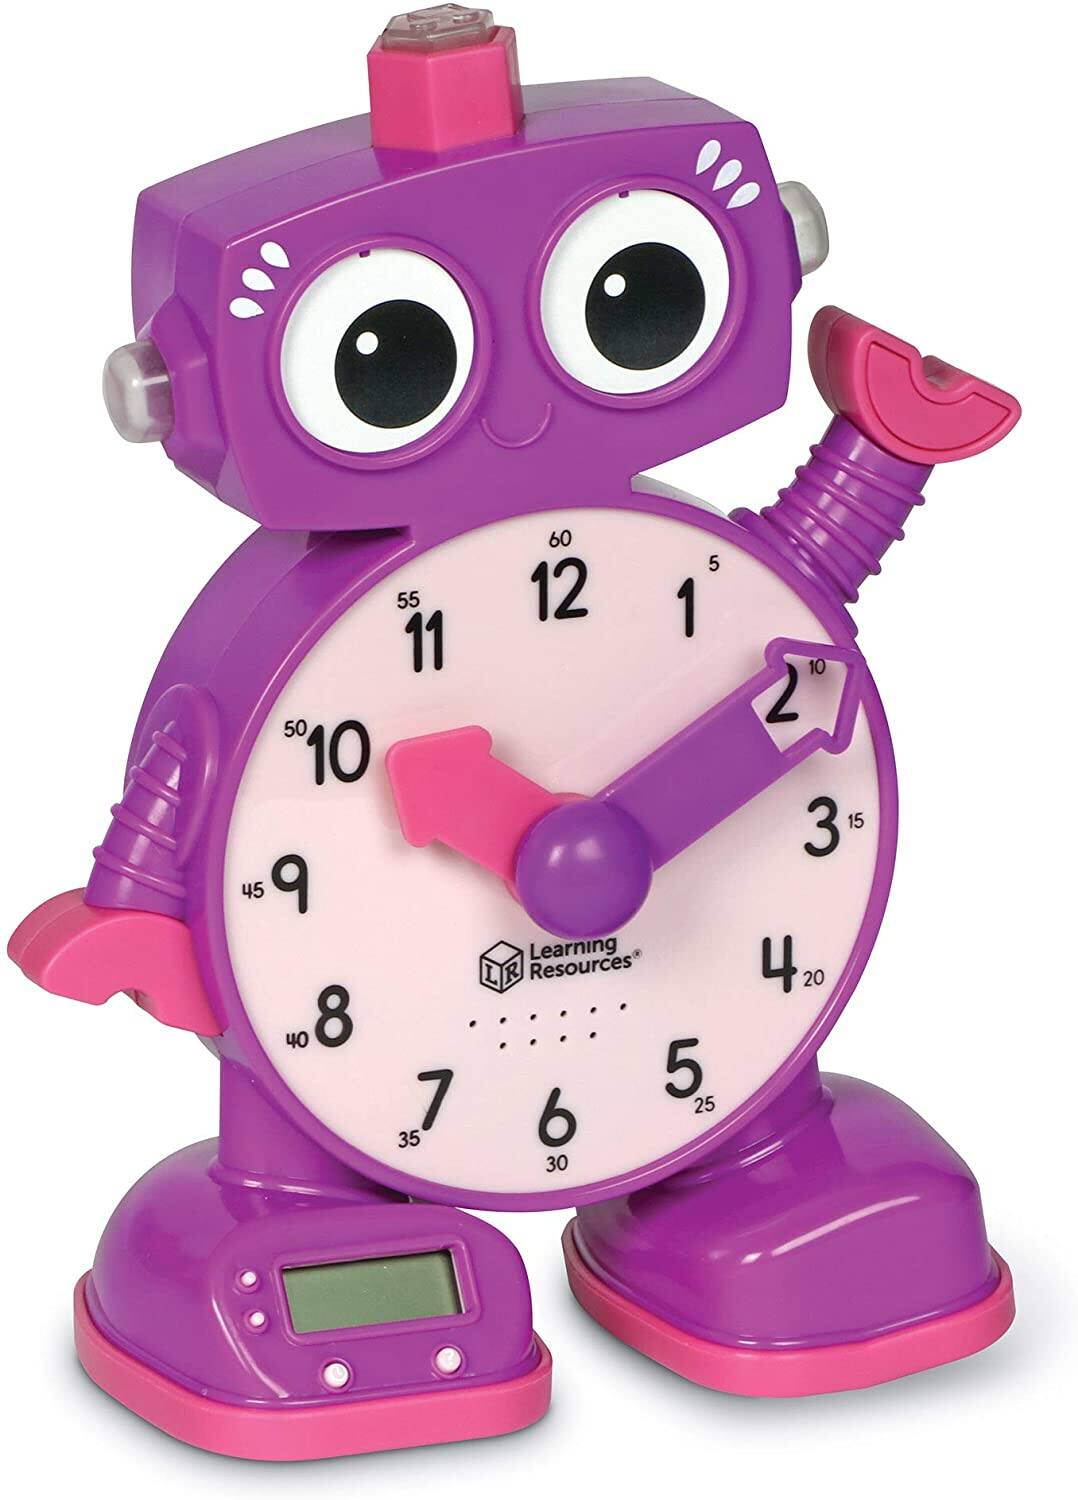 LearningResources Kid's Tock The Learning Clock (Purple) $12.44 + Free Shipping w/ Prime